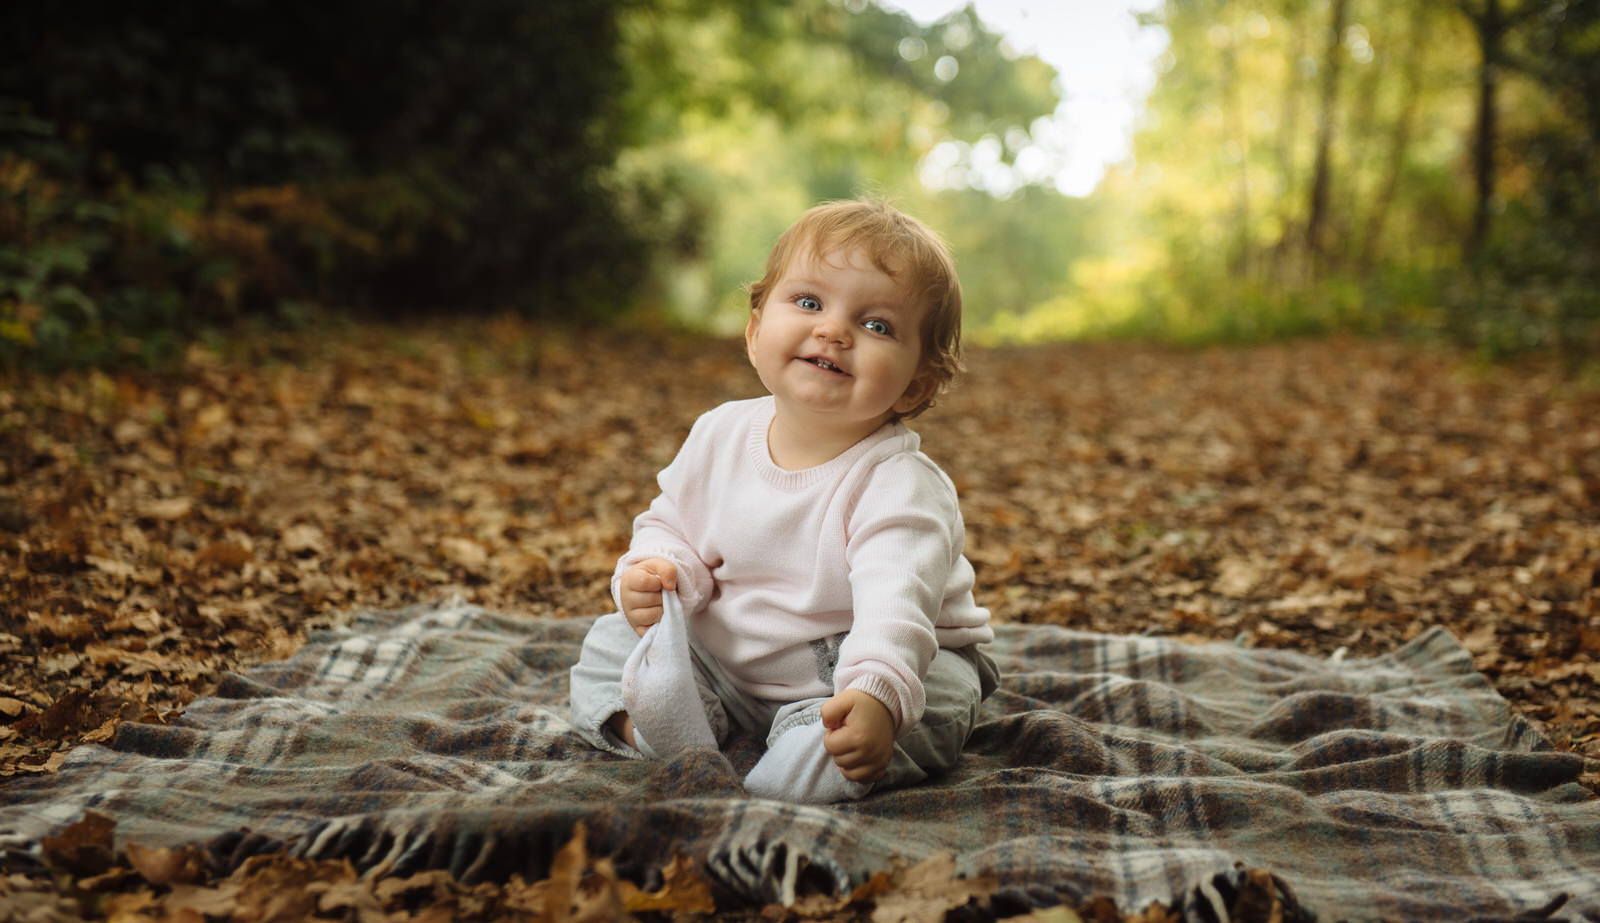 Baby portraits in the park - Family photography Royal Tunbridge Wells